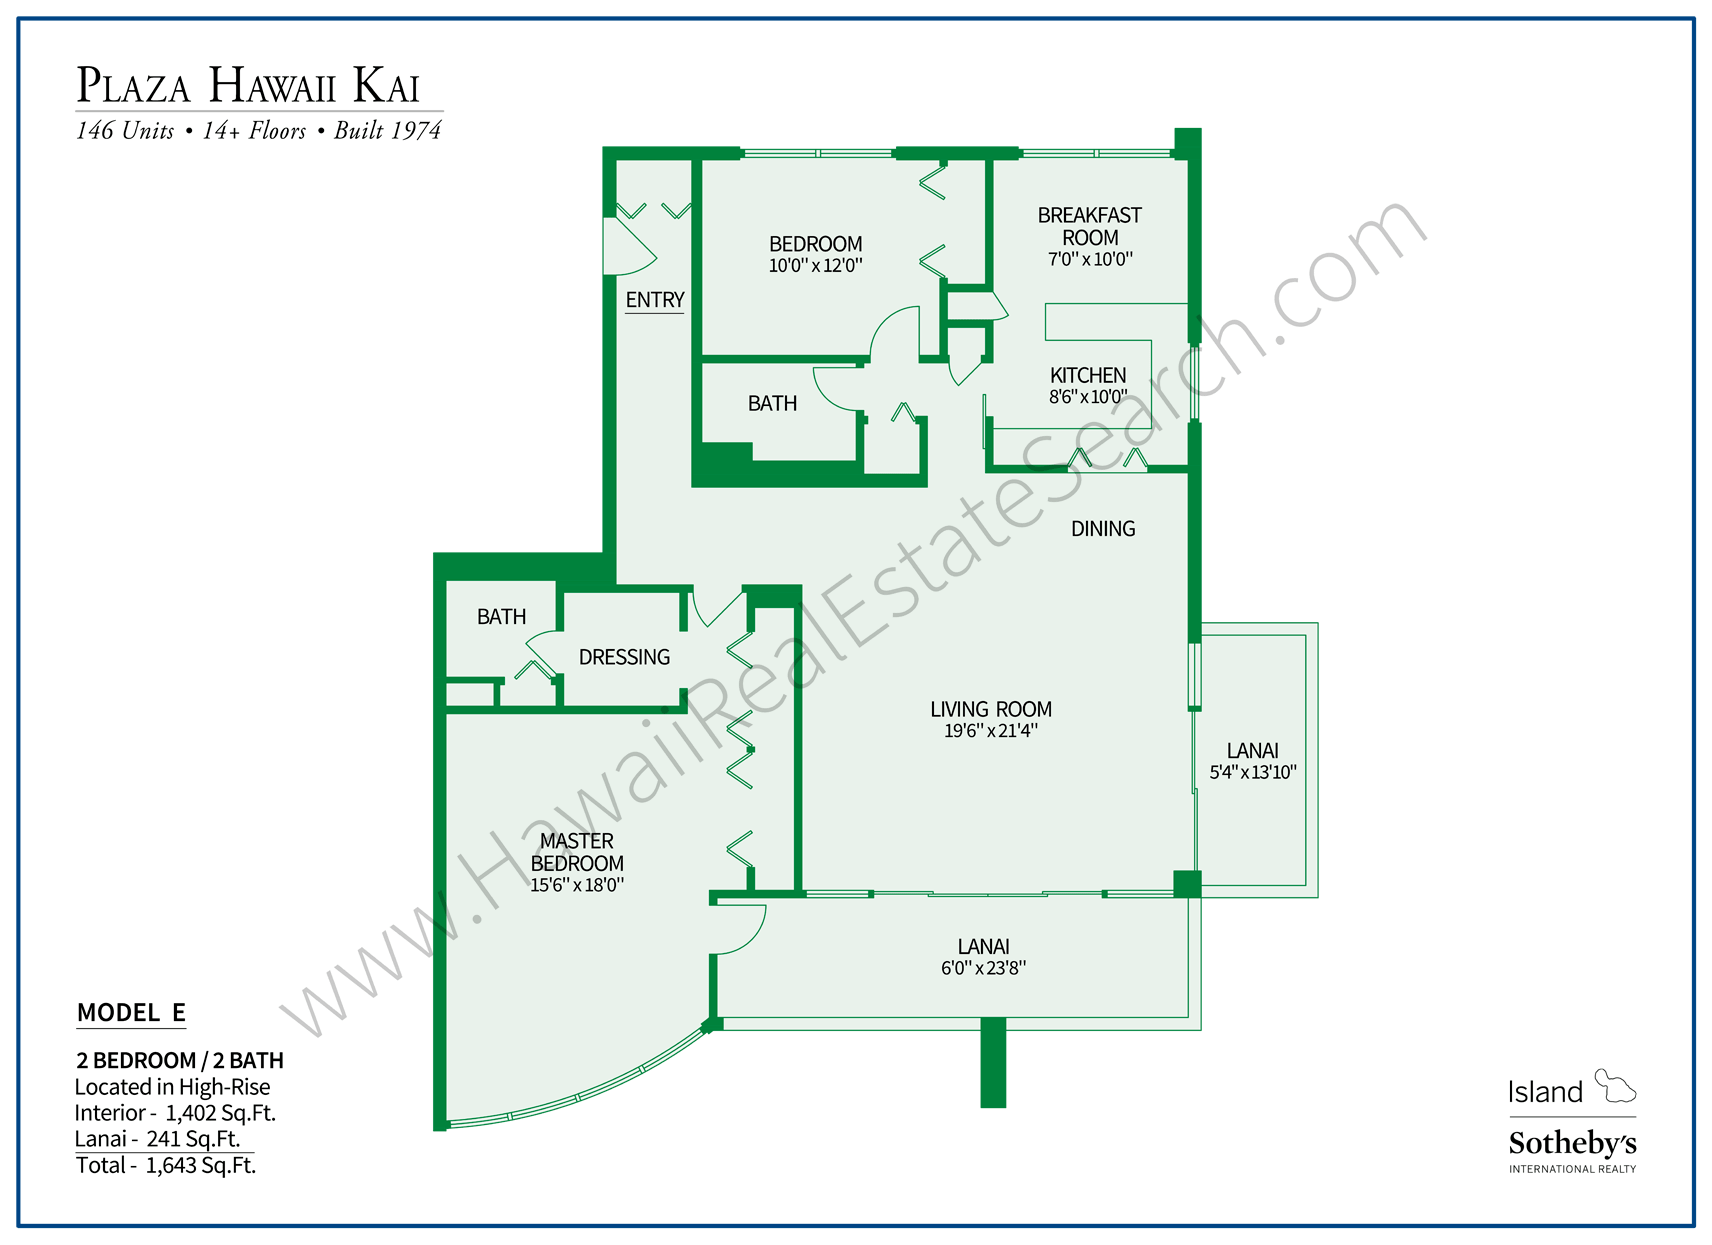 Plaza Hawaii Kai Floor Plan E